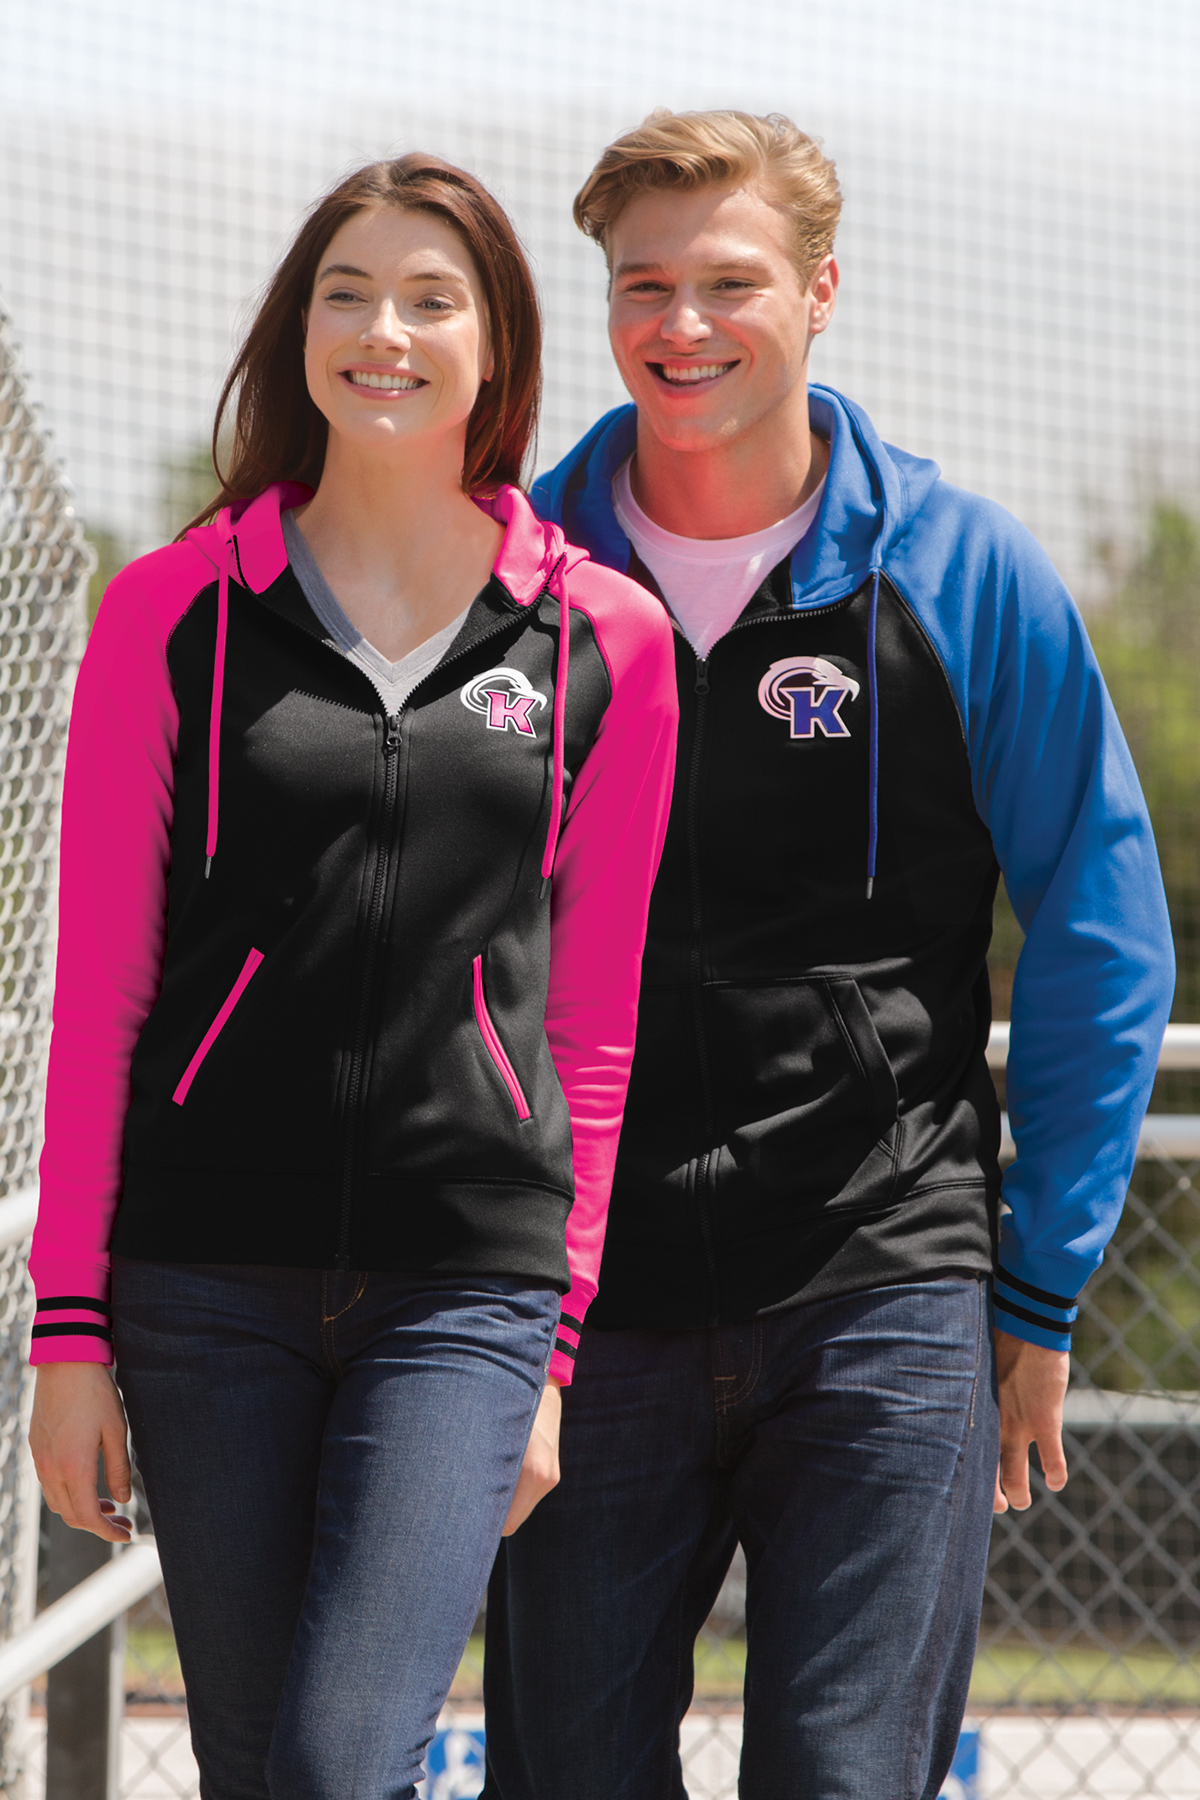 St236 Sport Tek Sport Wick Varsity Fleece Full Zip Hooded Jacket Mens And Ladies Sizestrophy Trolley Jackets, tanks, jerseys, shorts, wind shirts, and hoodies in small to 6xl sizes. st236 sport tek sport wick varsity fleece full zip hooded jacket mens and ladies sizes